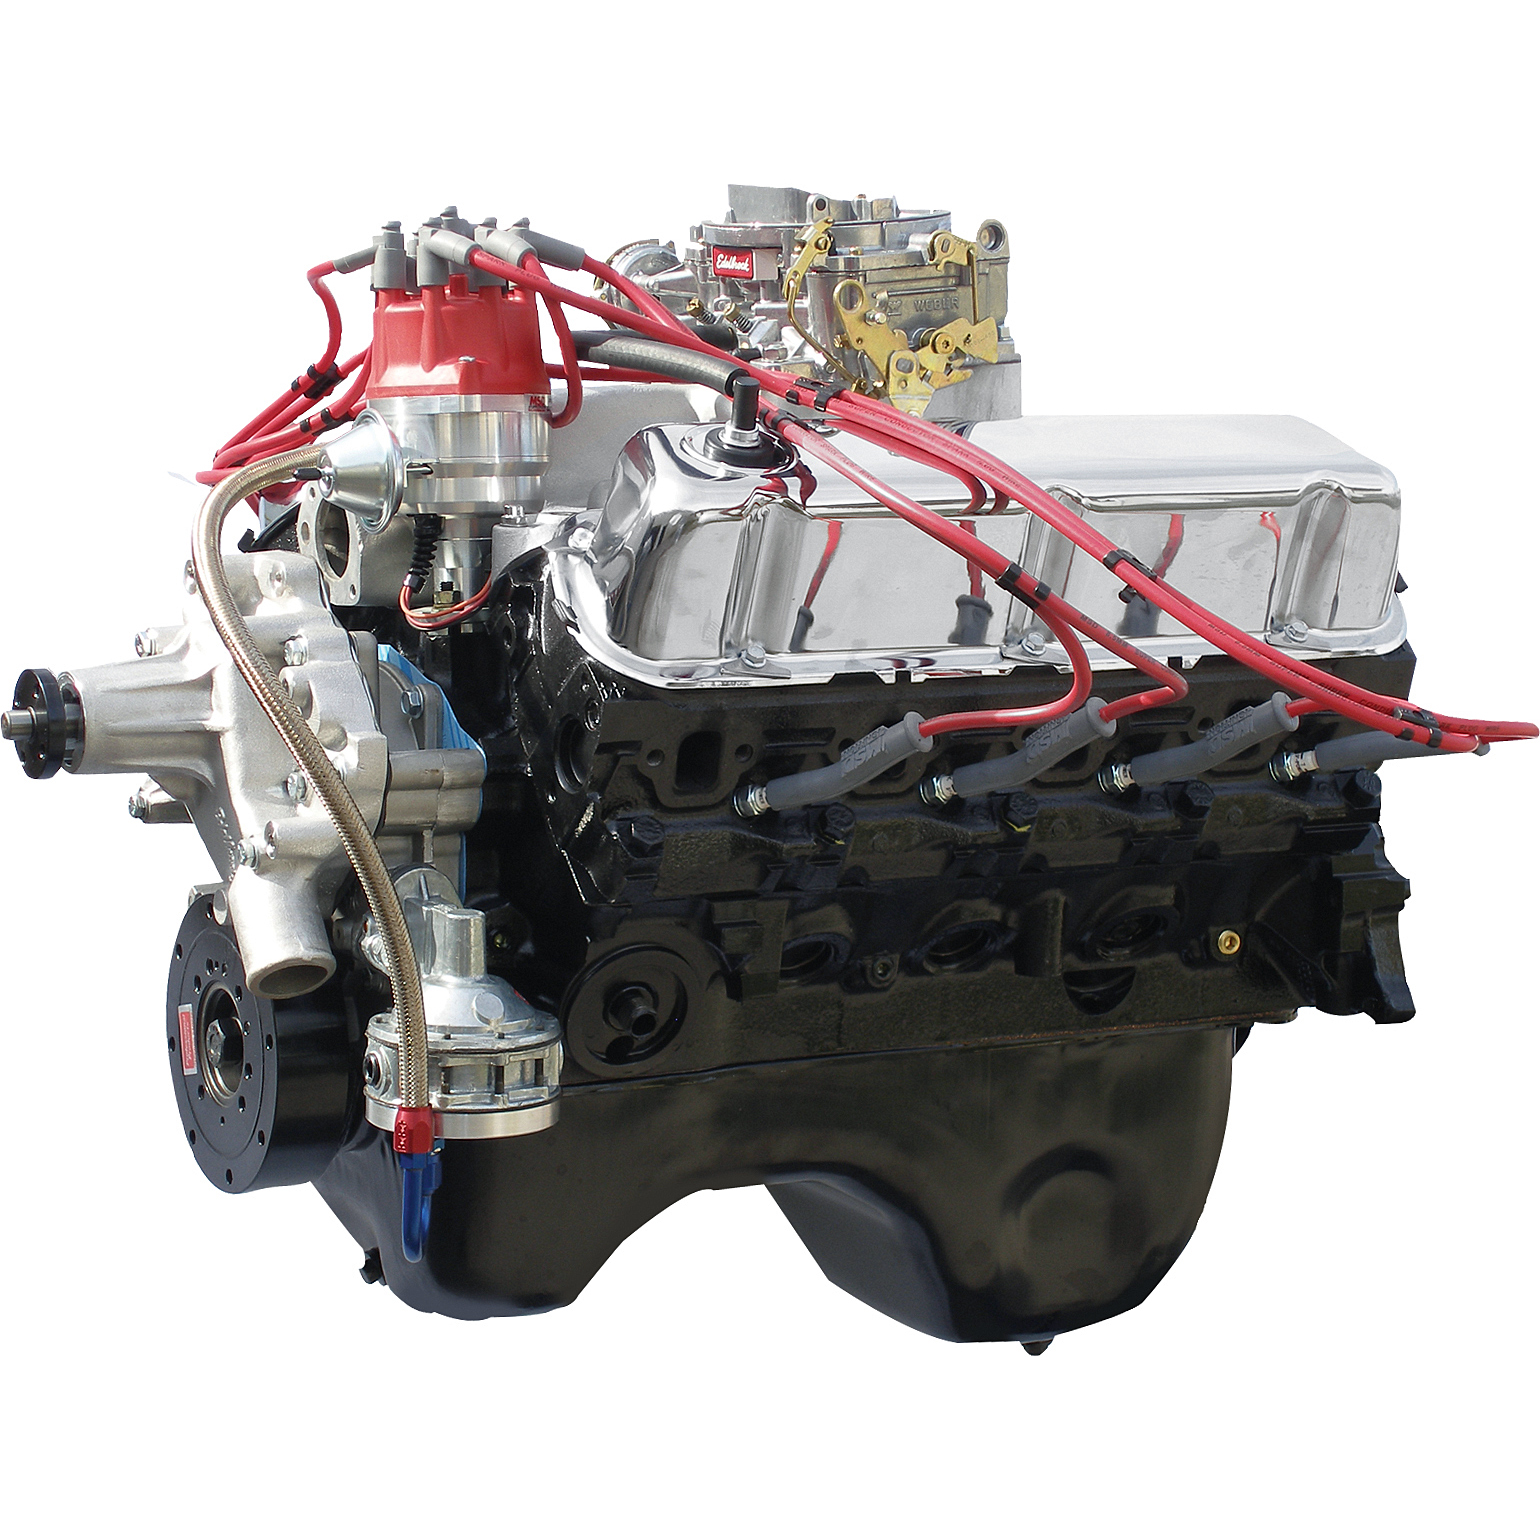 Summit racing equipment and blueprint engines power some of blueprint engines ford 347 stroker crate engine blueprint engines chevy 383 malvernweather Gallery